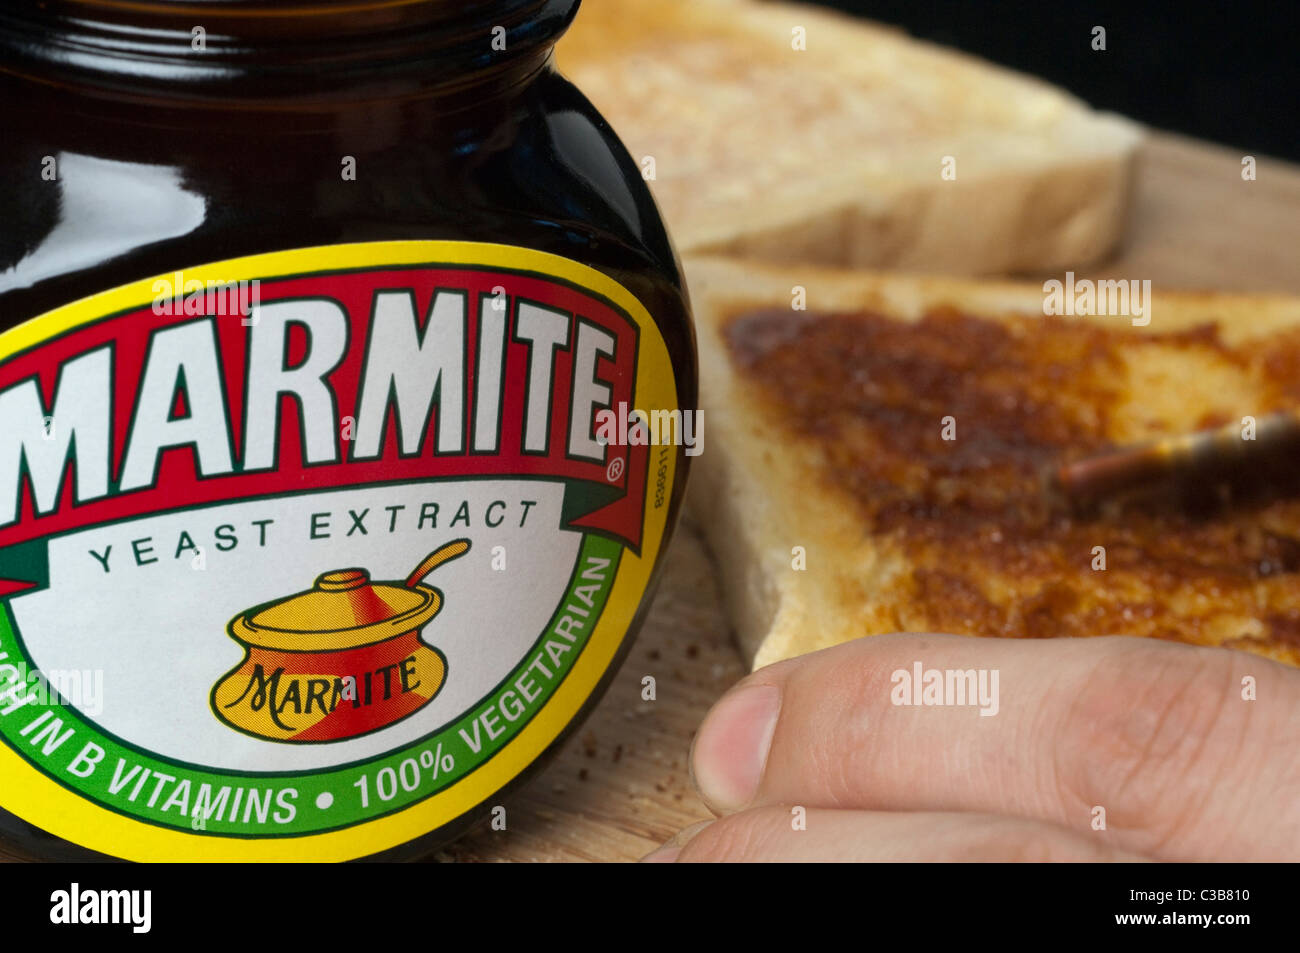 Illustrative image of Marmite, a Unilever food product. Stock Photo